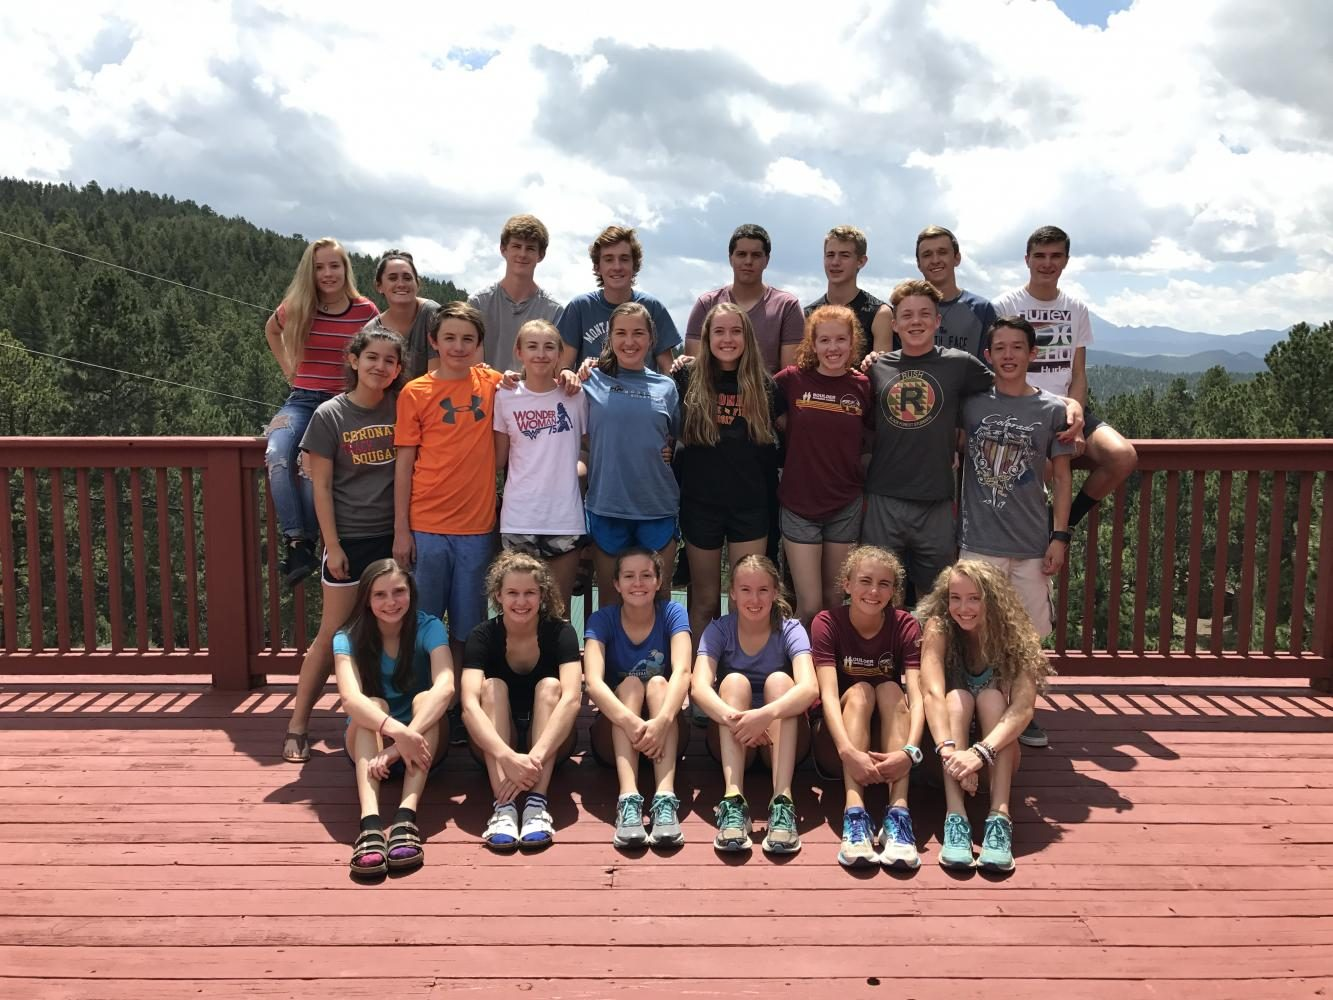 Some of the Coronado Cross Country team poses for a picture after three days of training at Quaker Ridge.